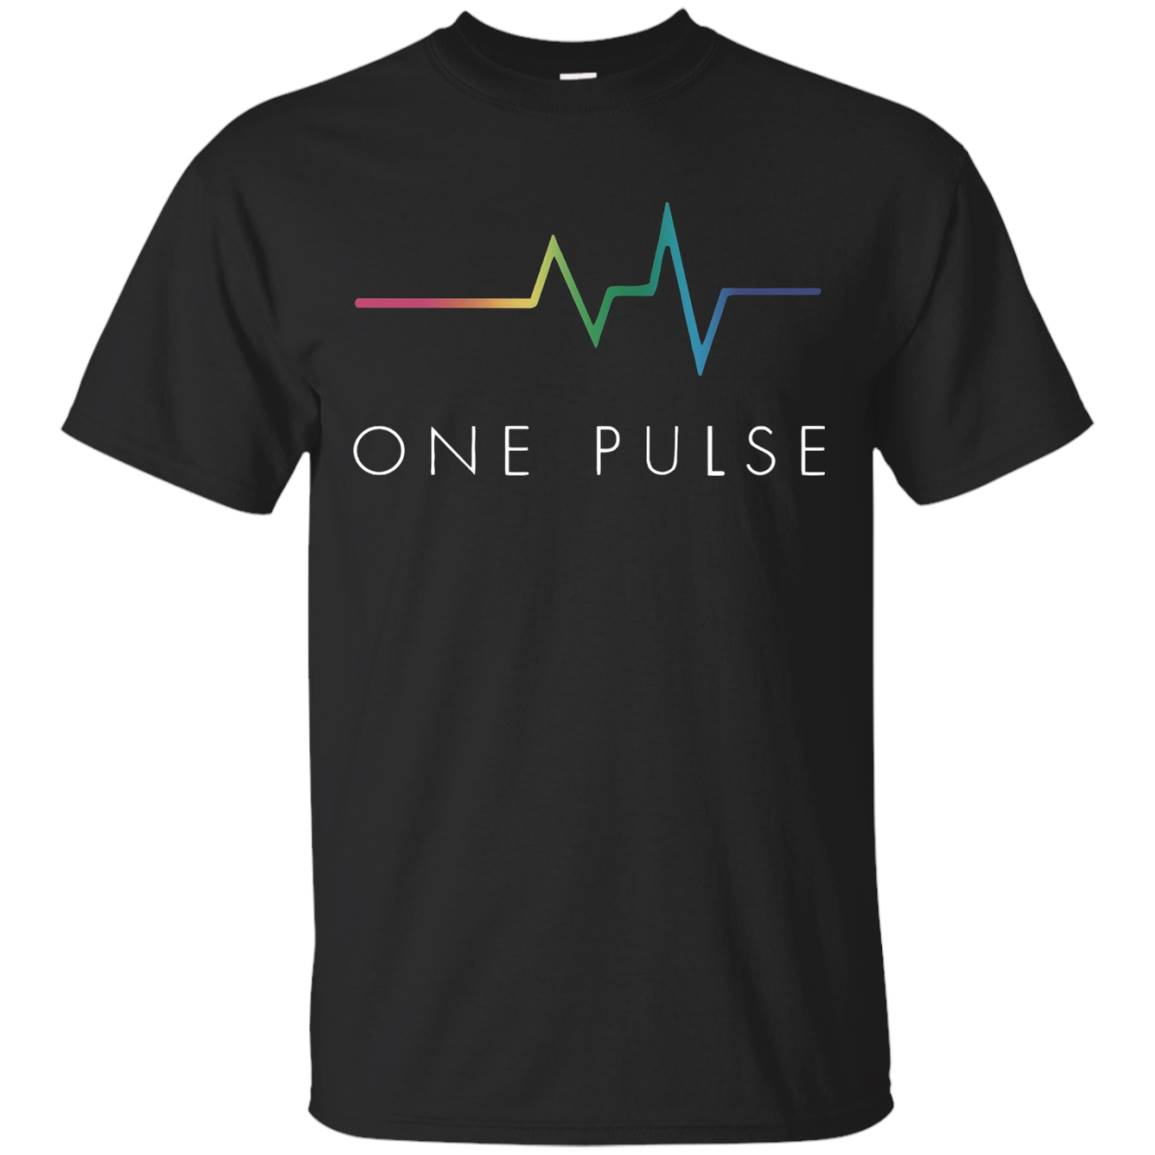 One Pulse Heart Orlando Strong T-shirt Transgende LGBT Pride